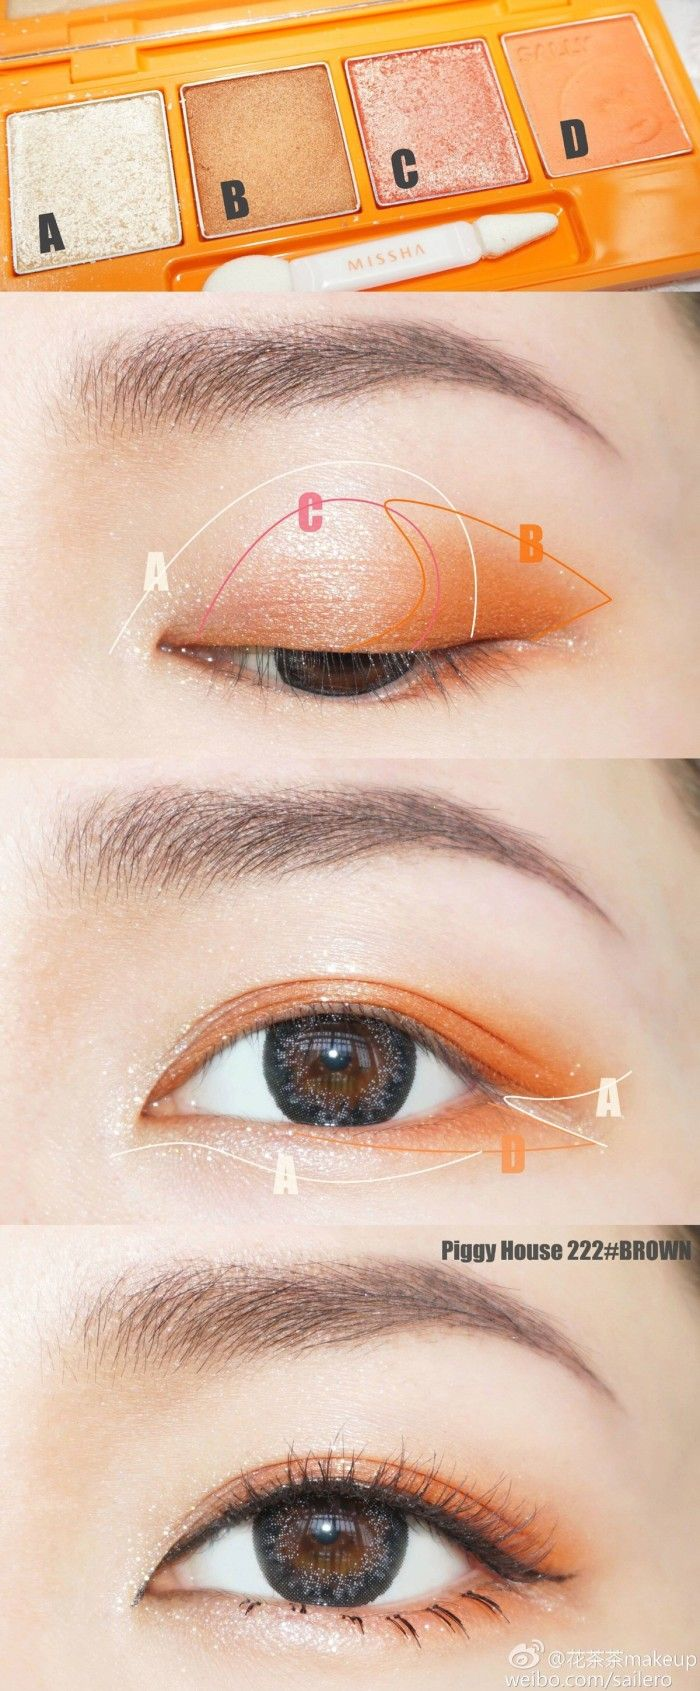 Orange eye shadow #Koreanmakeuptutorials